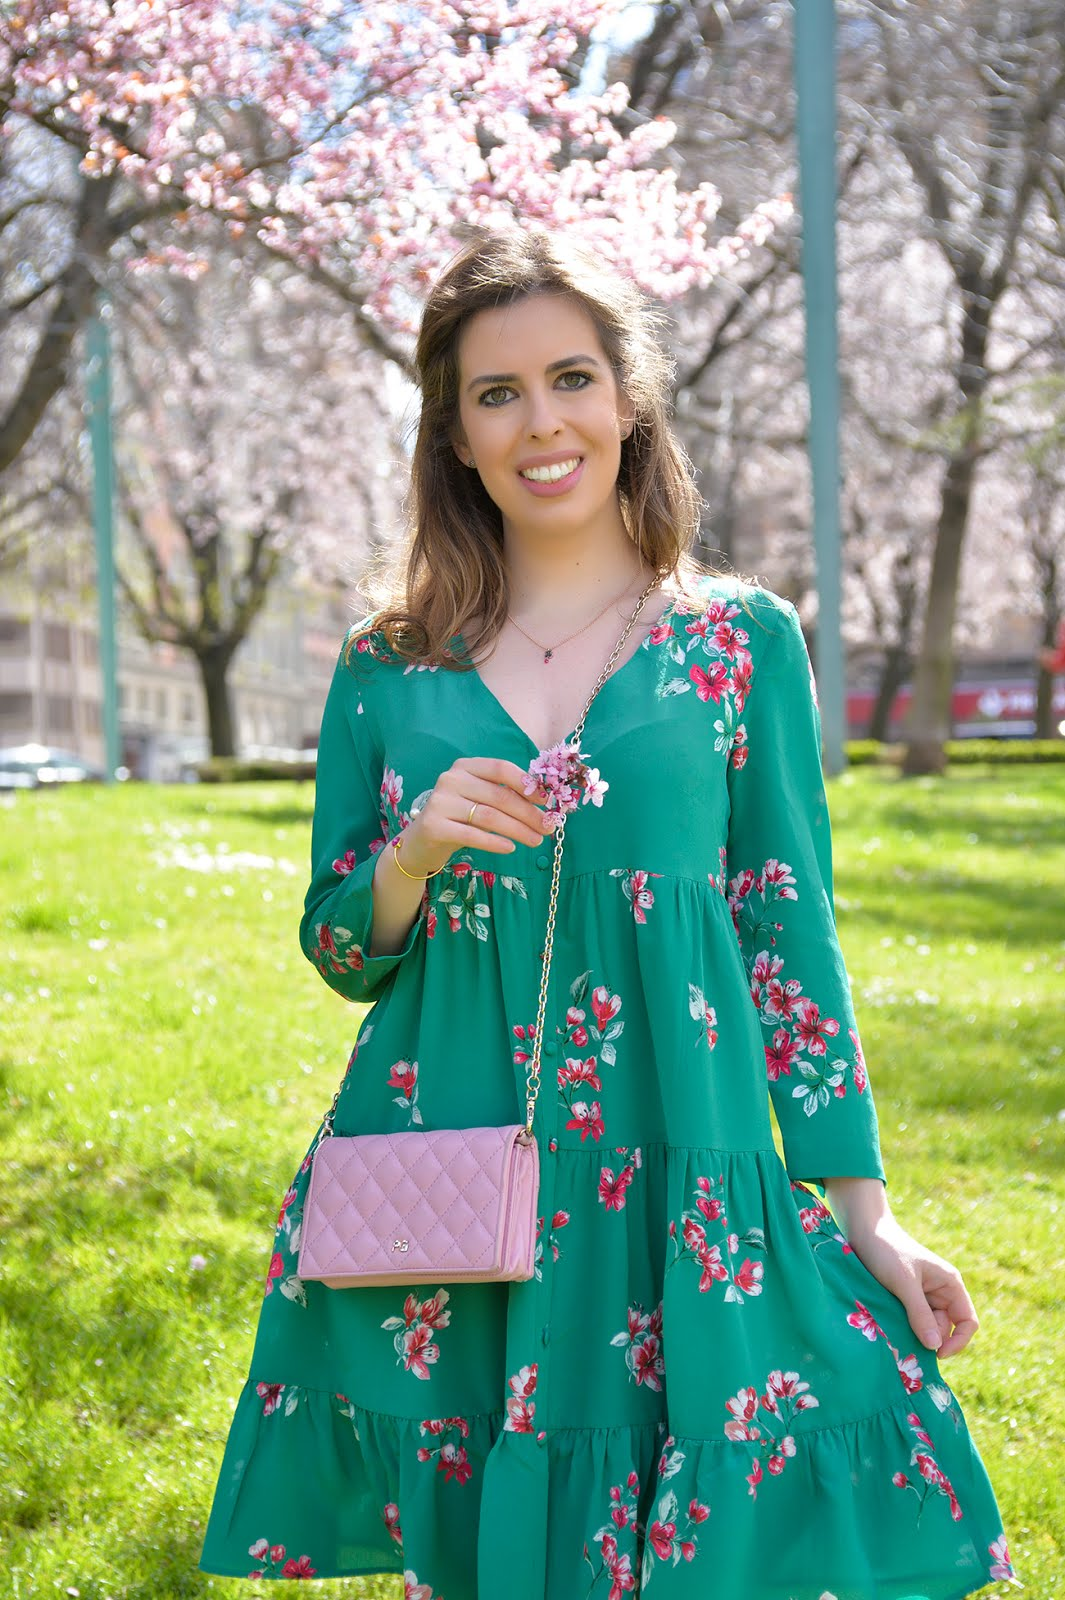 beautiful spring springtime flowers cherry blossom bloom europe spain scenery cute spring dress sezane